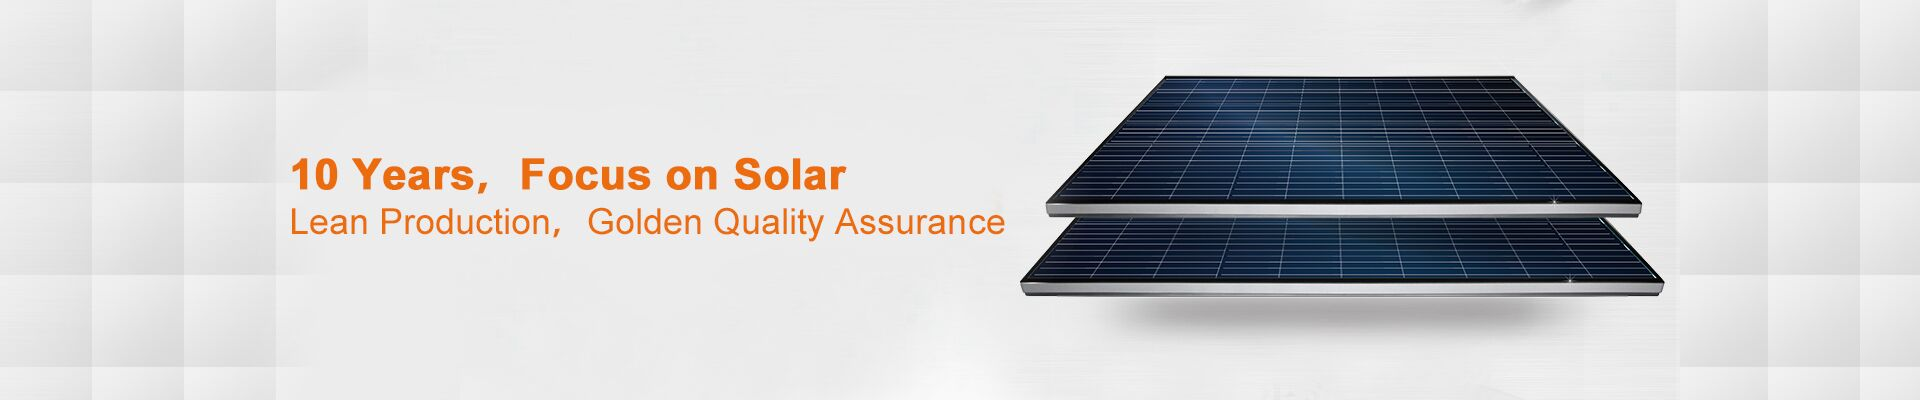 We focus solar